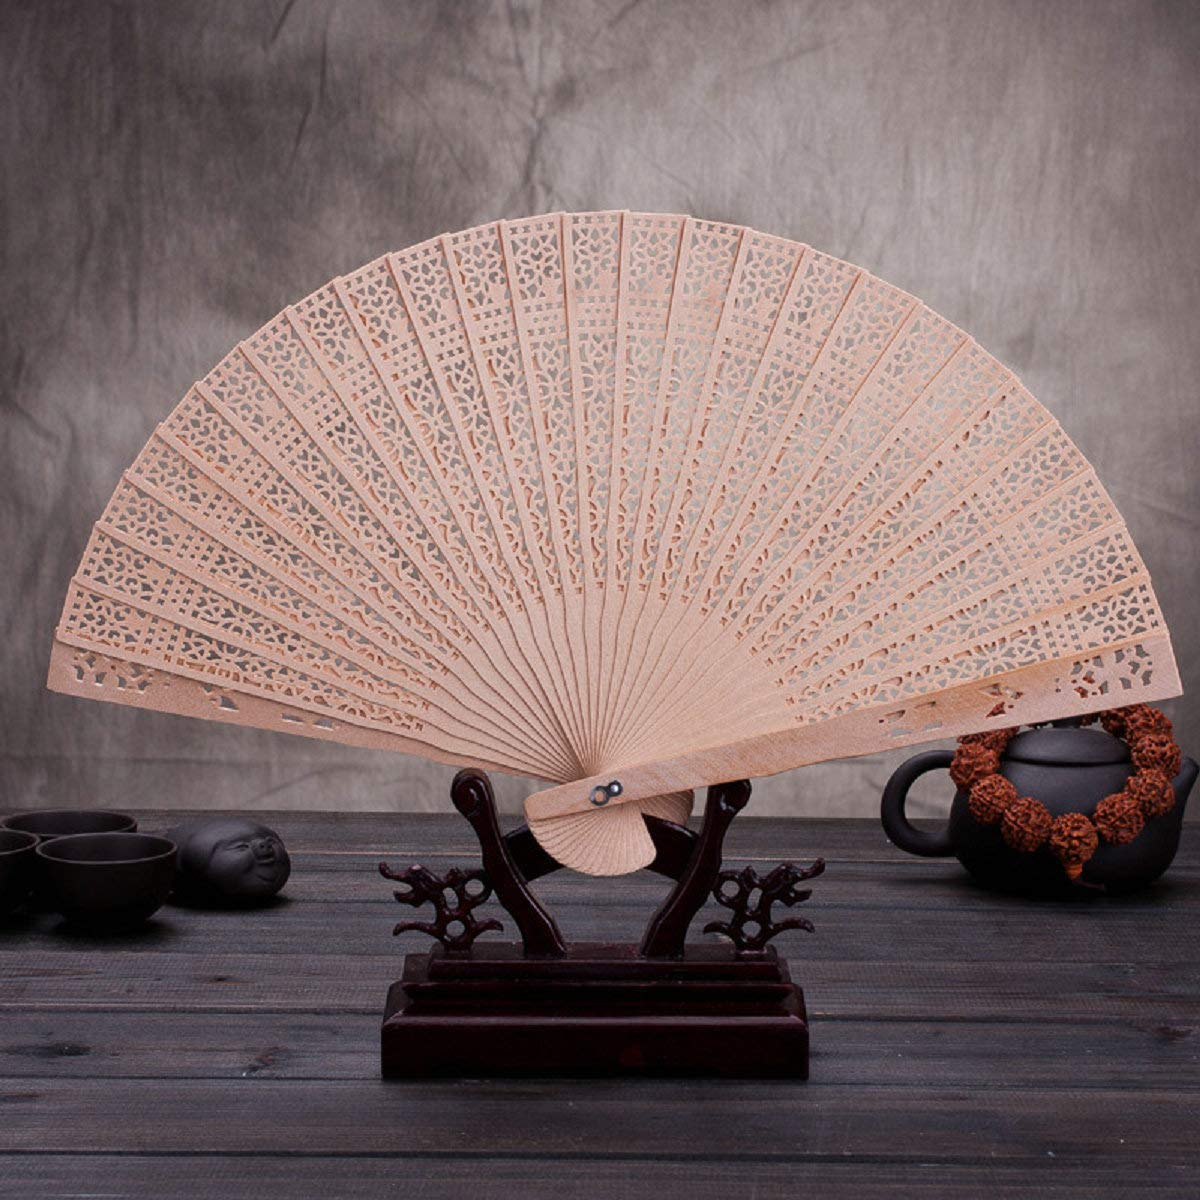 Atongham Customised Wedding Wooden Fans. Wedding Fan, Birthday, Engagement Party,Engraved Fans,Personalized Wood Fan Wedding Favours by Atongham (Image #8)